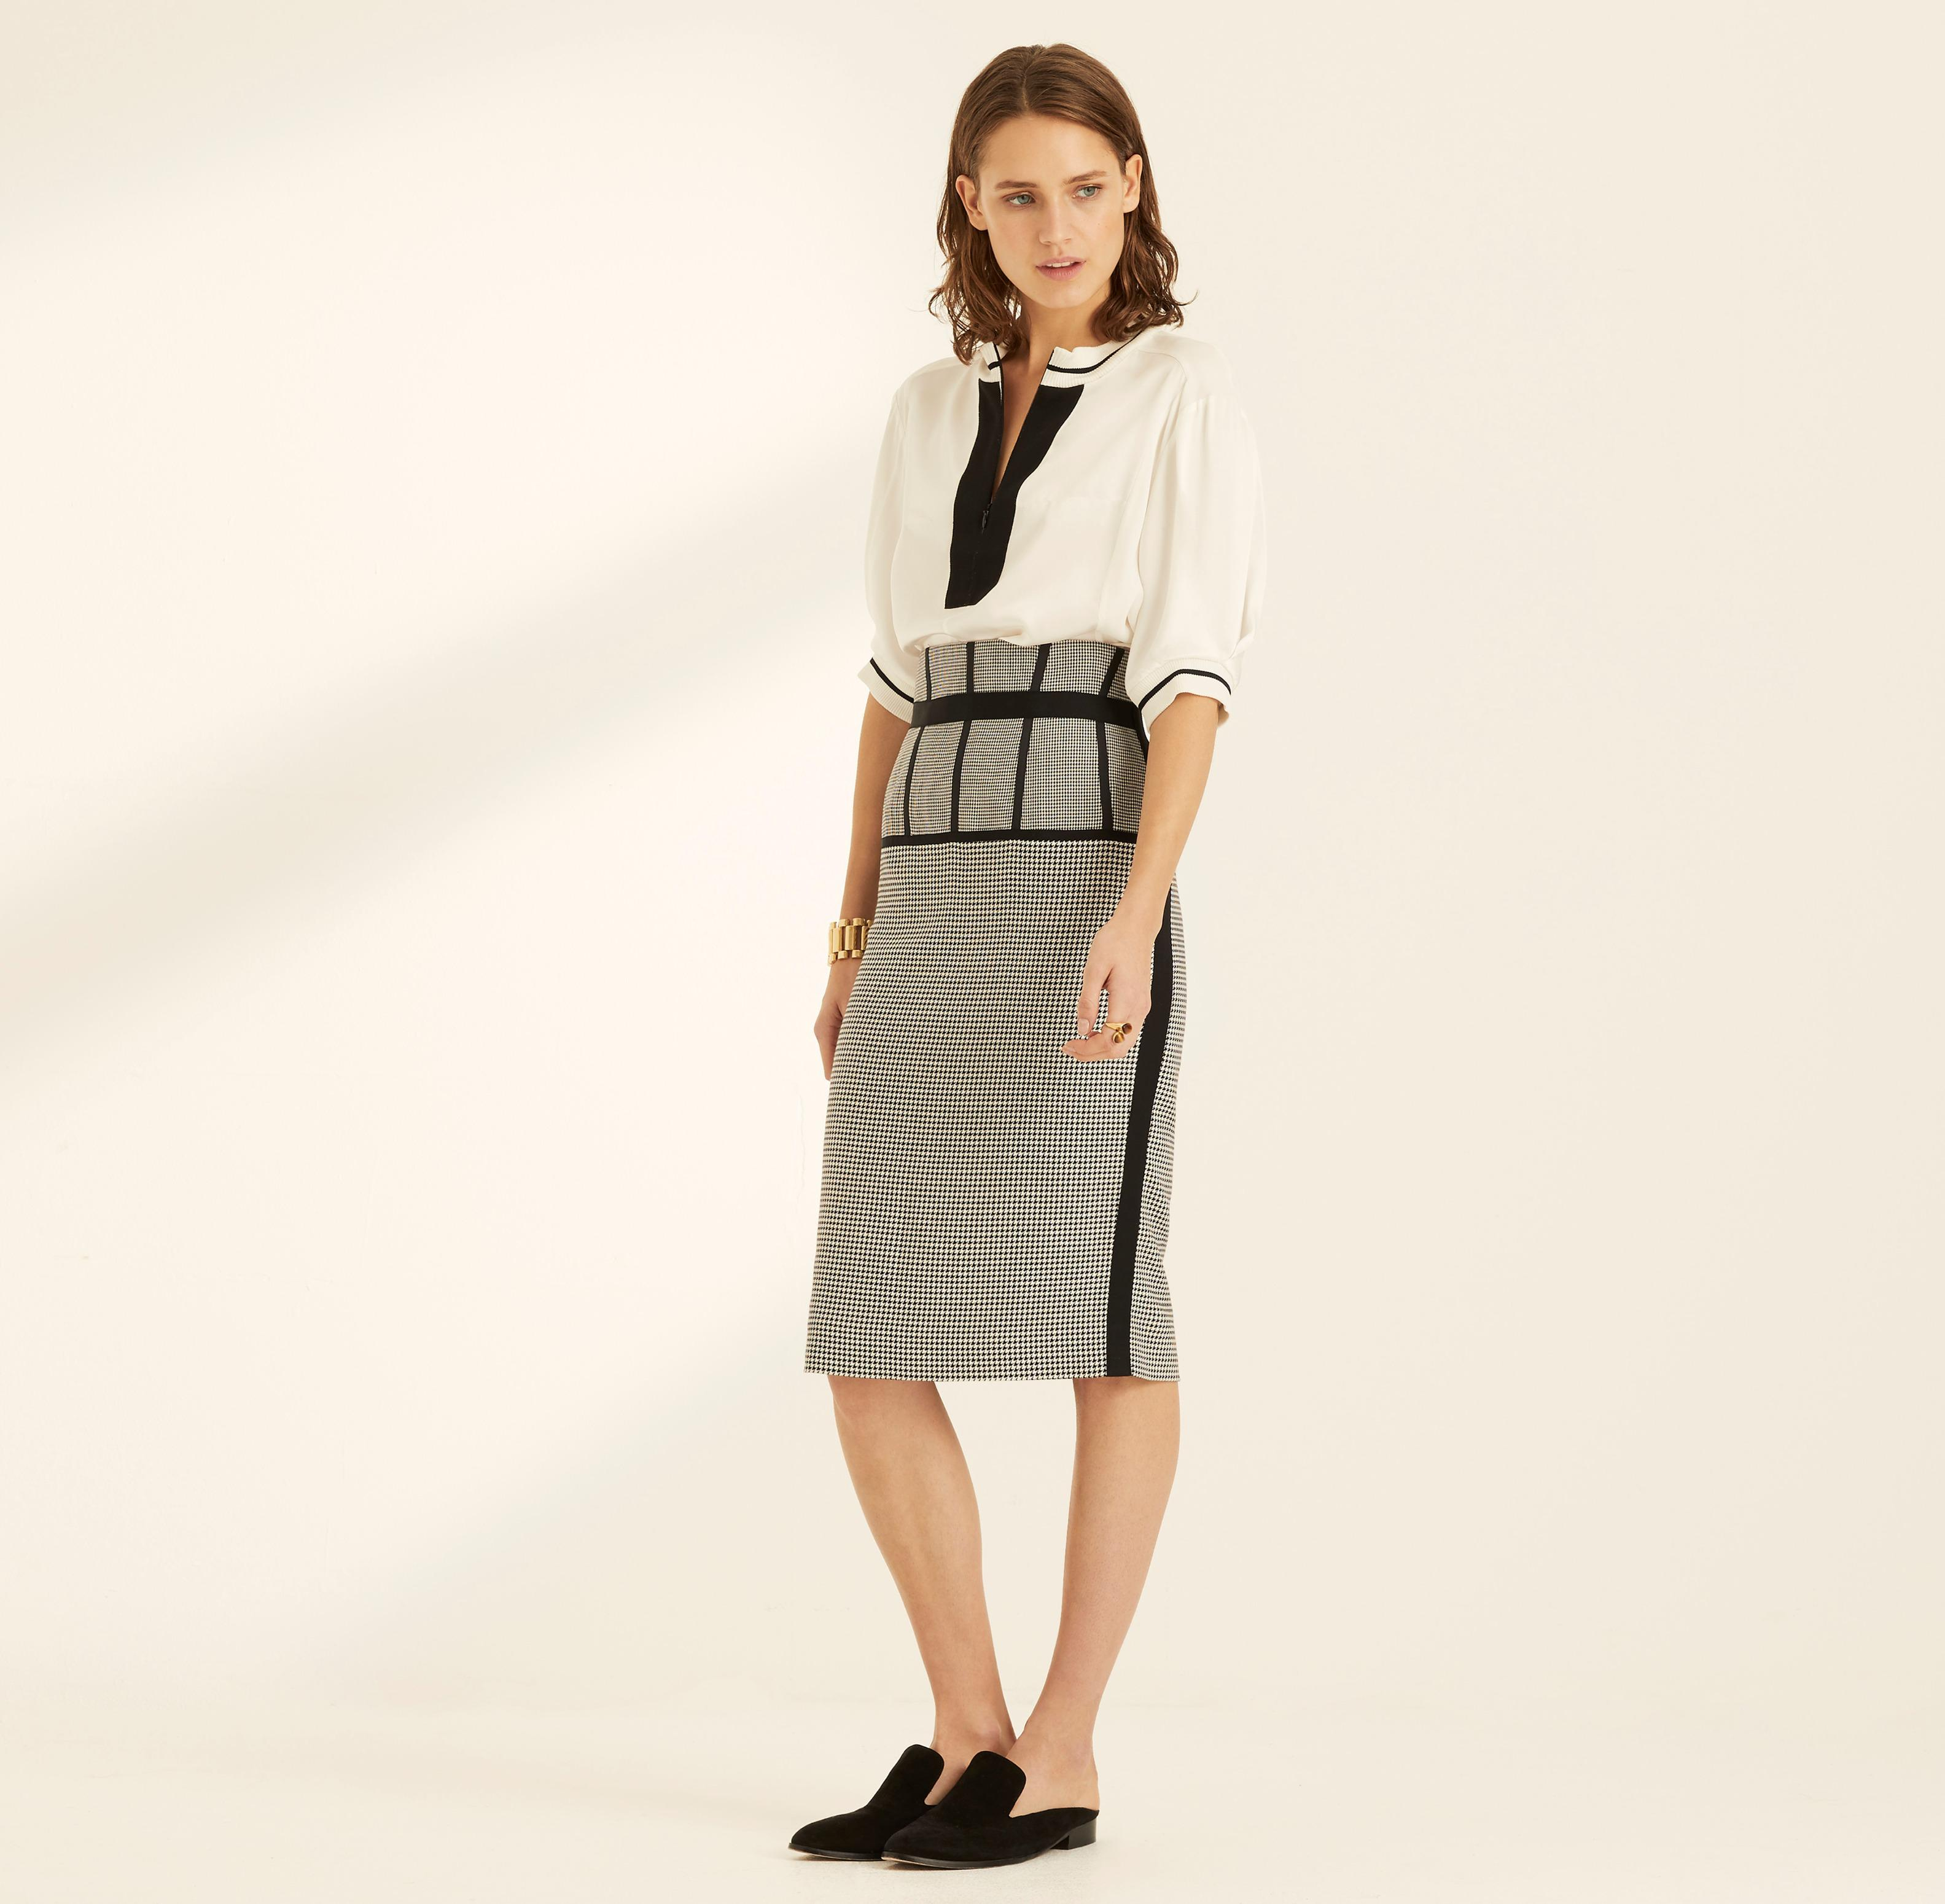 Dogtooth Lyst Check In Rok Wakeley Amanda Pencil Black 0OP8nwkX